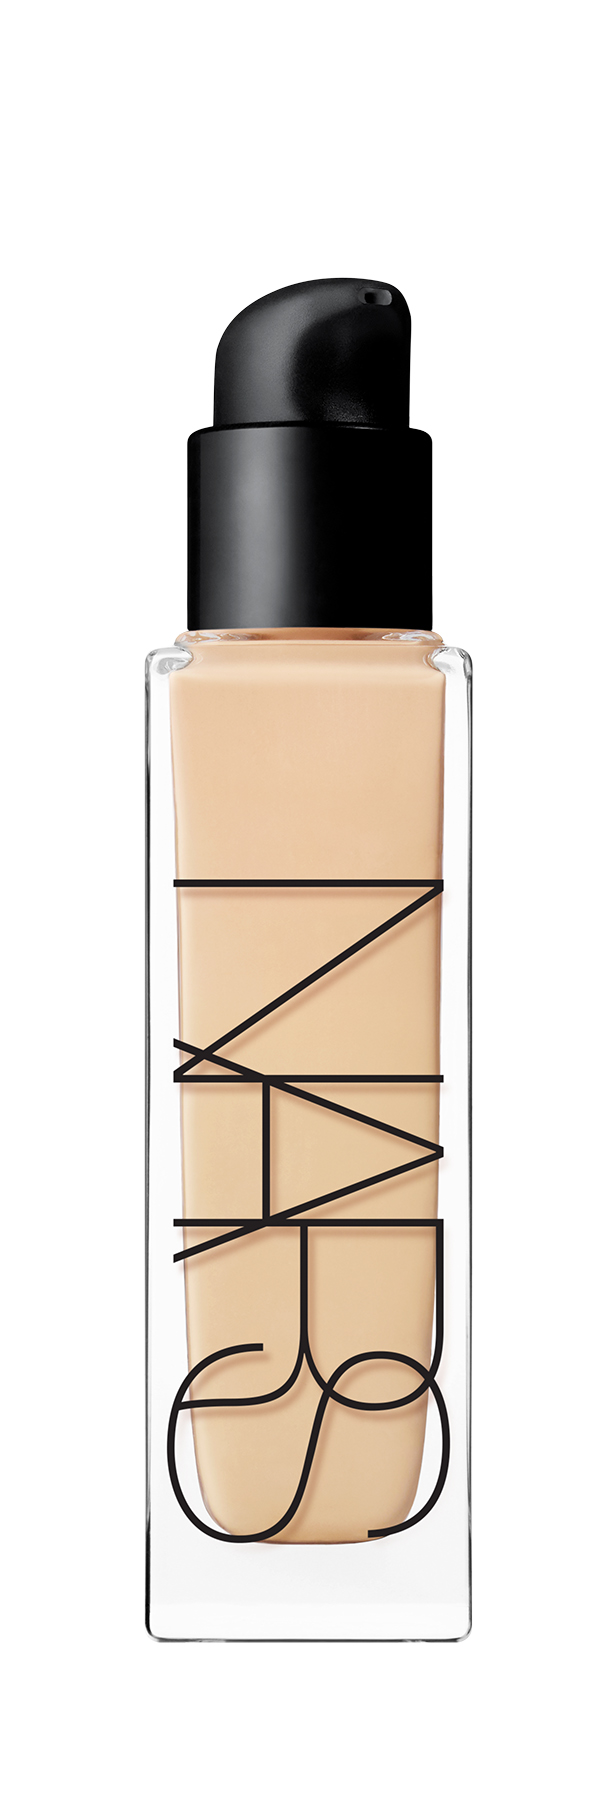 NARS Deauville Natural Radiant Longwear Foundation